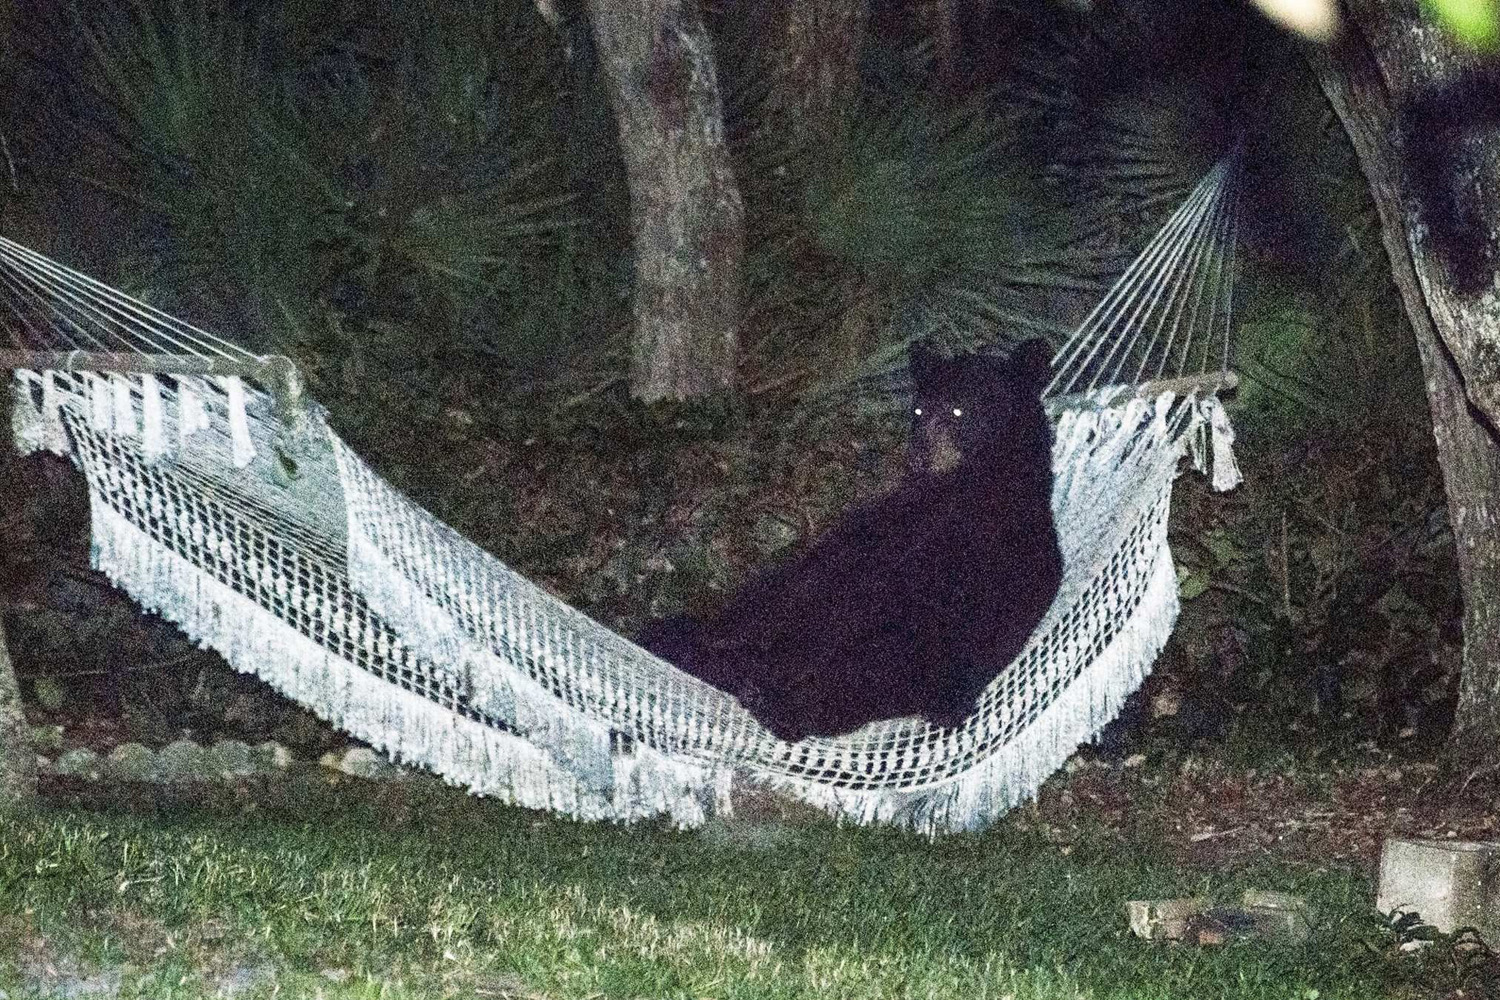 May 30, 2014. A black bear lies on a hammock at a residential back yard in Daytona Beach, Florida.